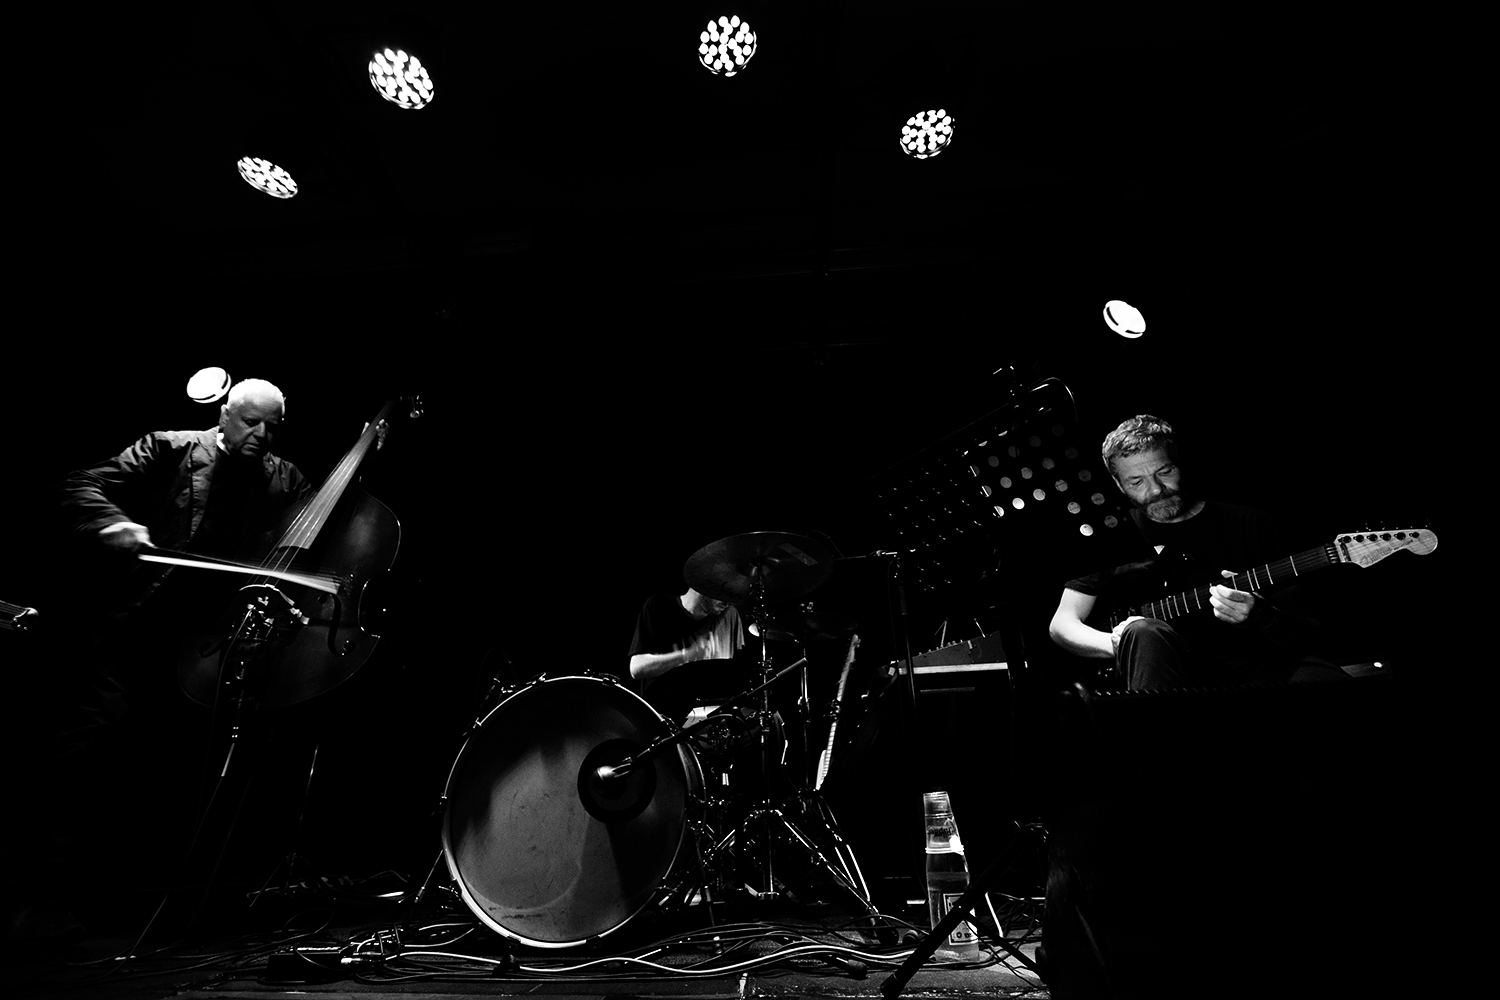 Arnold Dreyblatt & The Orchestra of Excited Strings by Laurent Orseau - Les Ateliers Claus - Brussels, Belgium #3